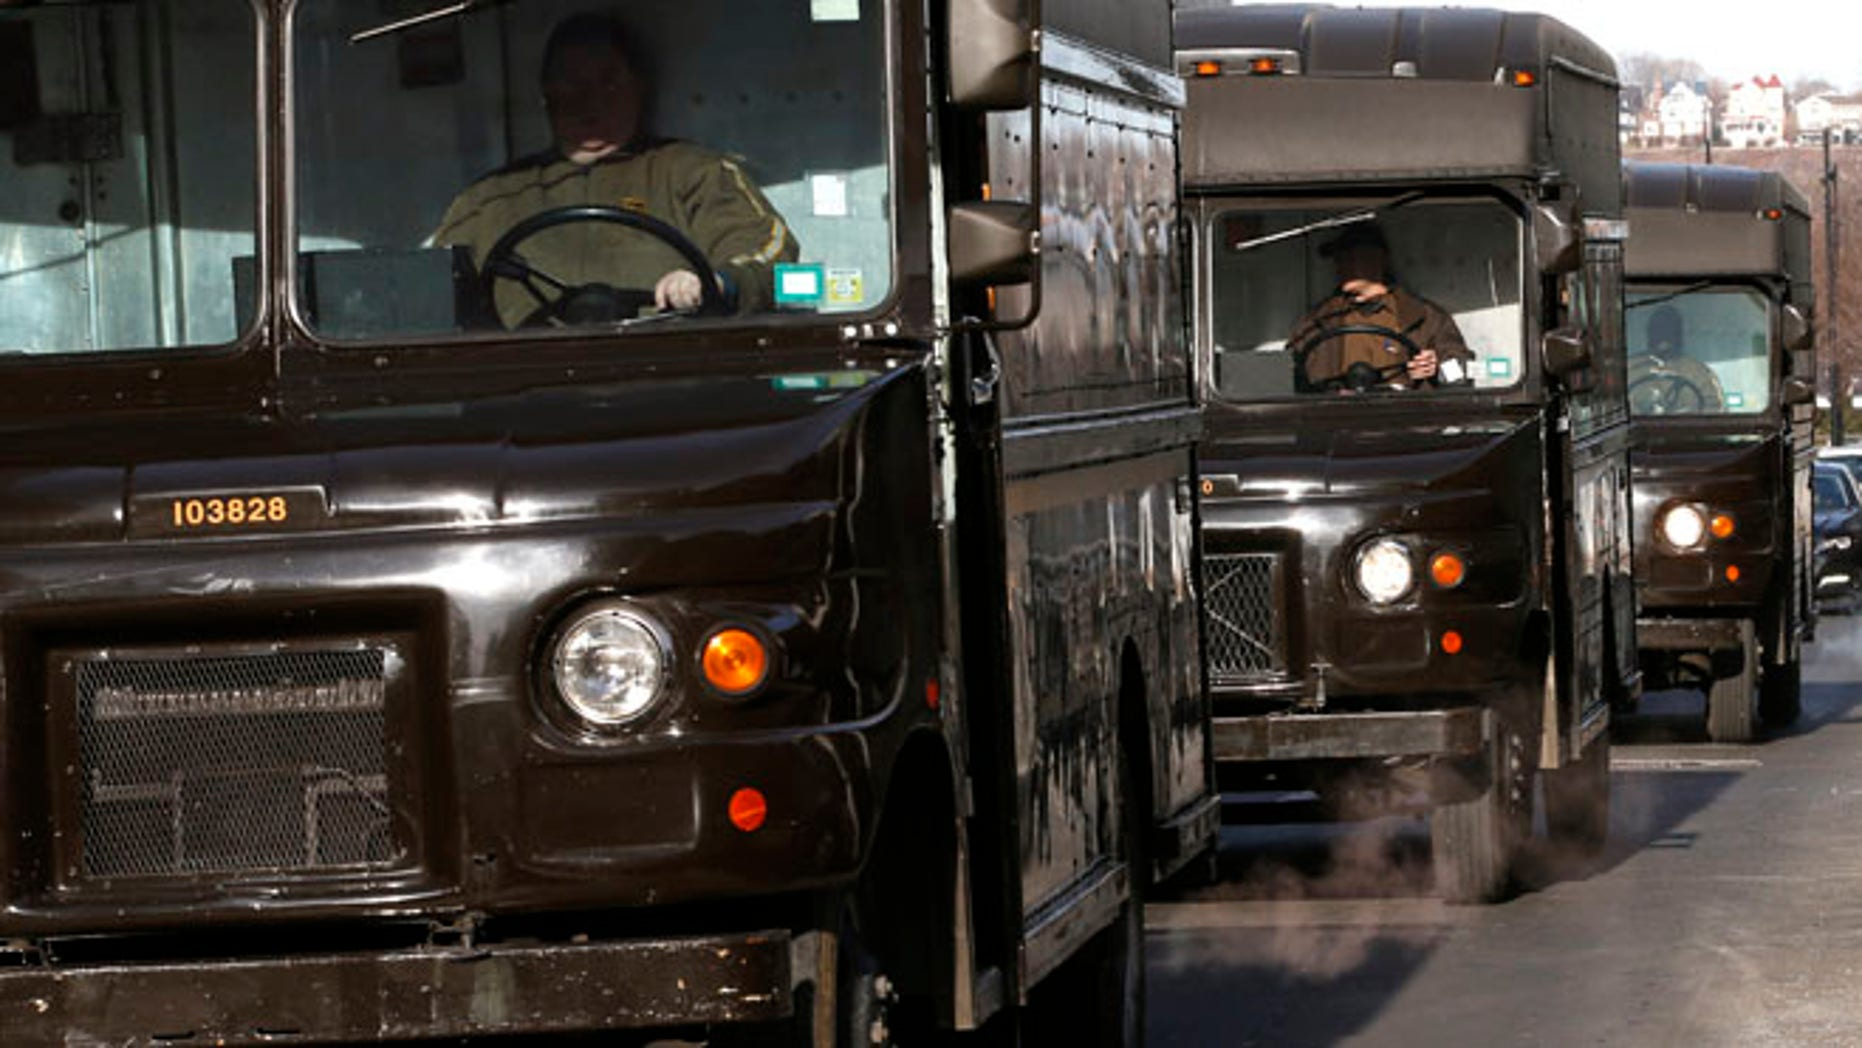 UPS To Fire 250 Queens Workers For Protesting One Employee